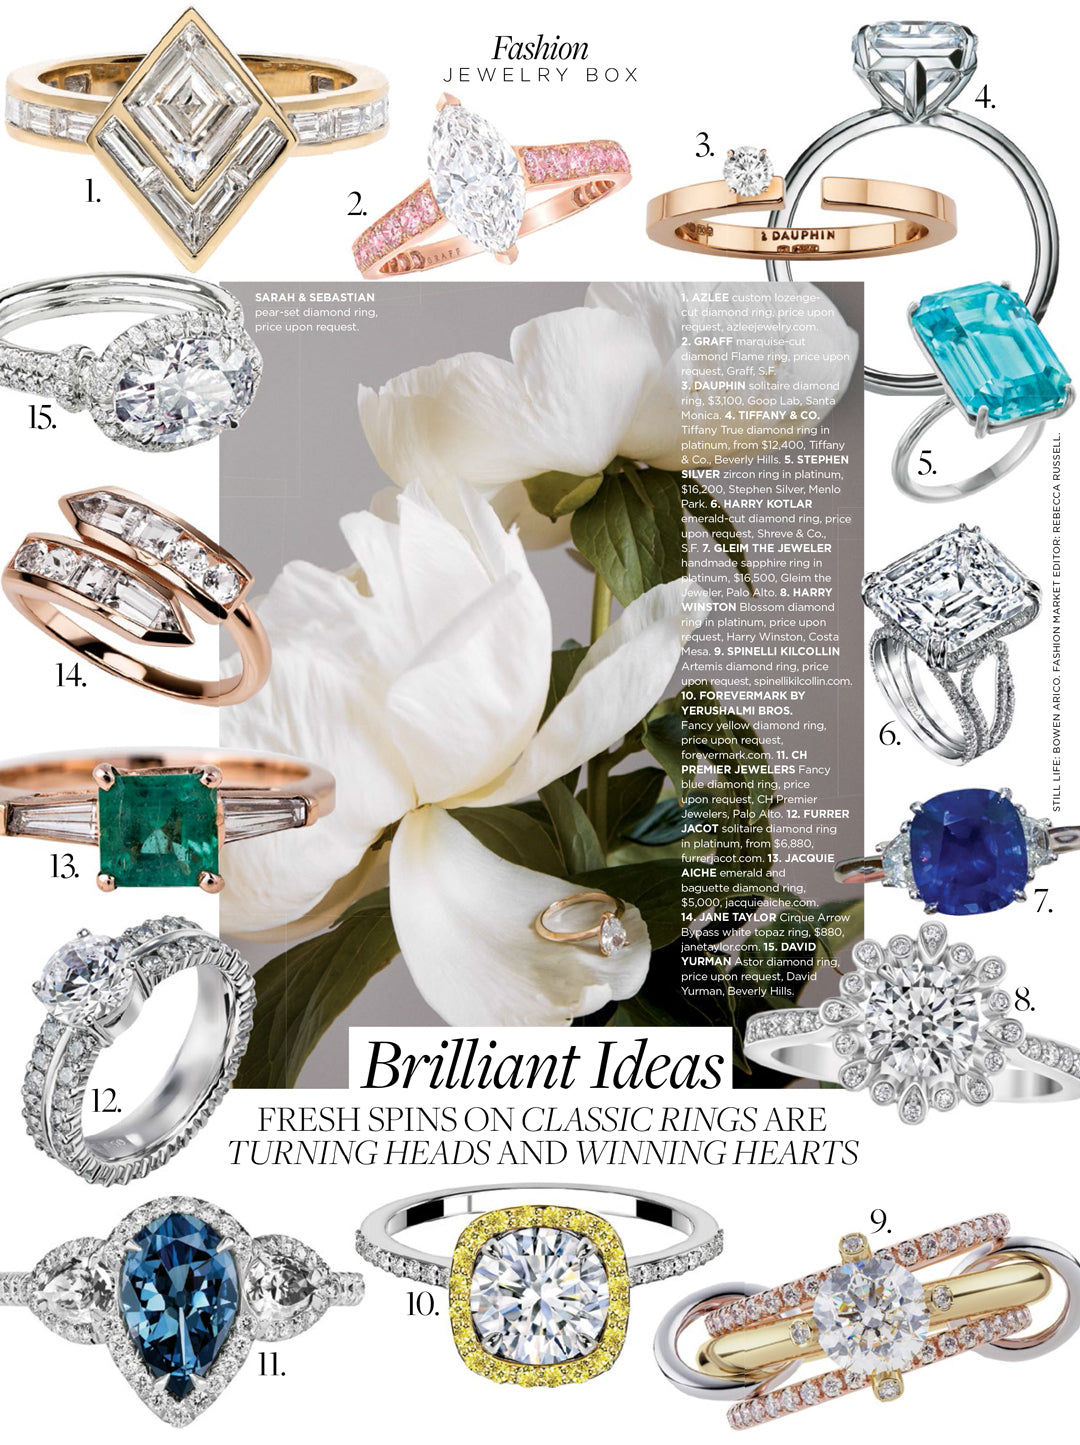 c weddings magazine spinelli kilcollin artemis ring linked-rings diamond-ring luxury-jewelry stacked-rings